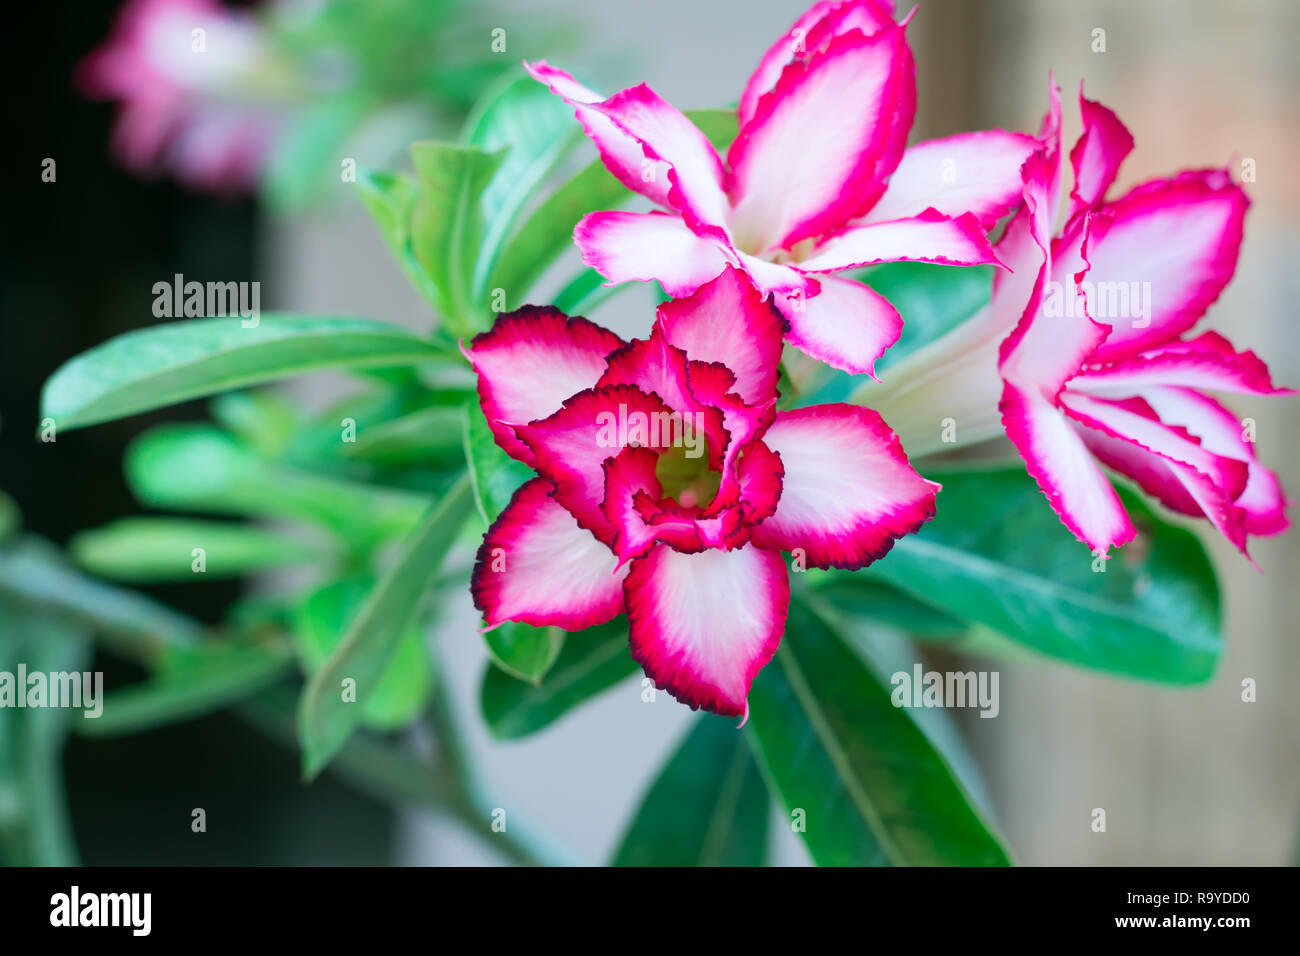 Red Desert Rose Or Impala Lily Or Mock Azalea With Green Leaves